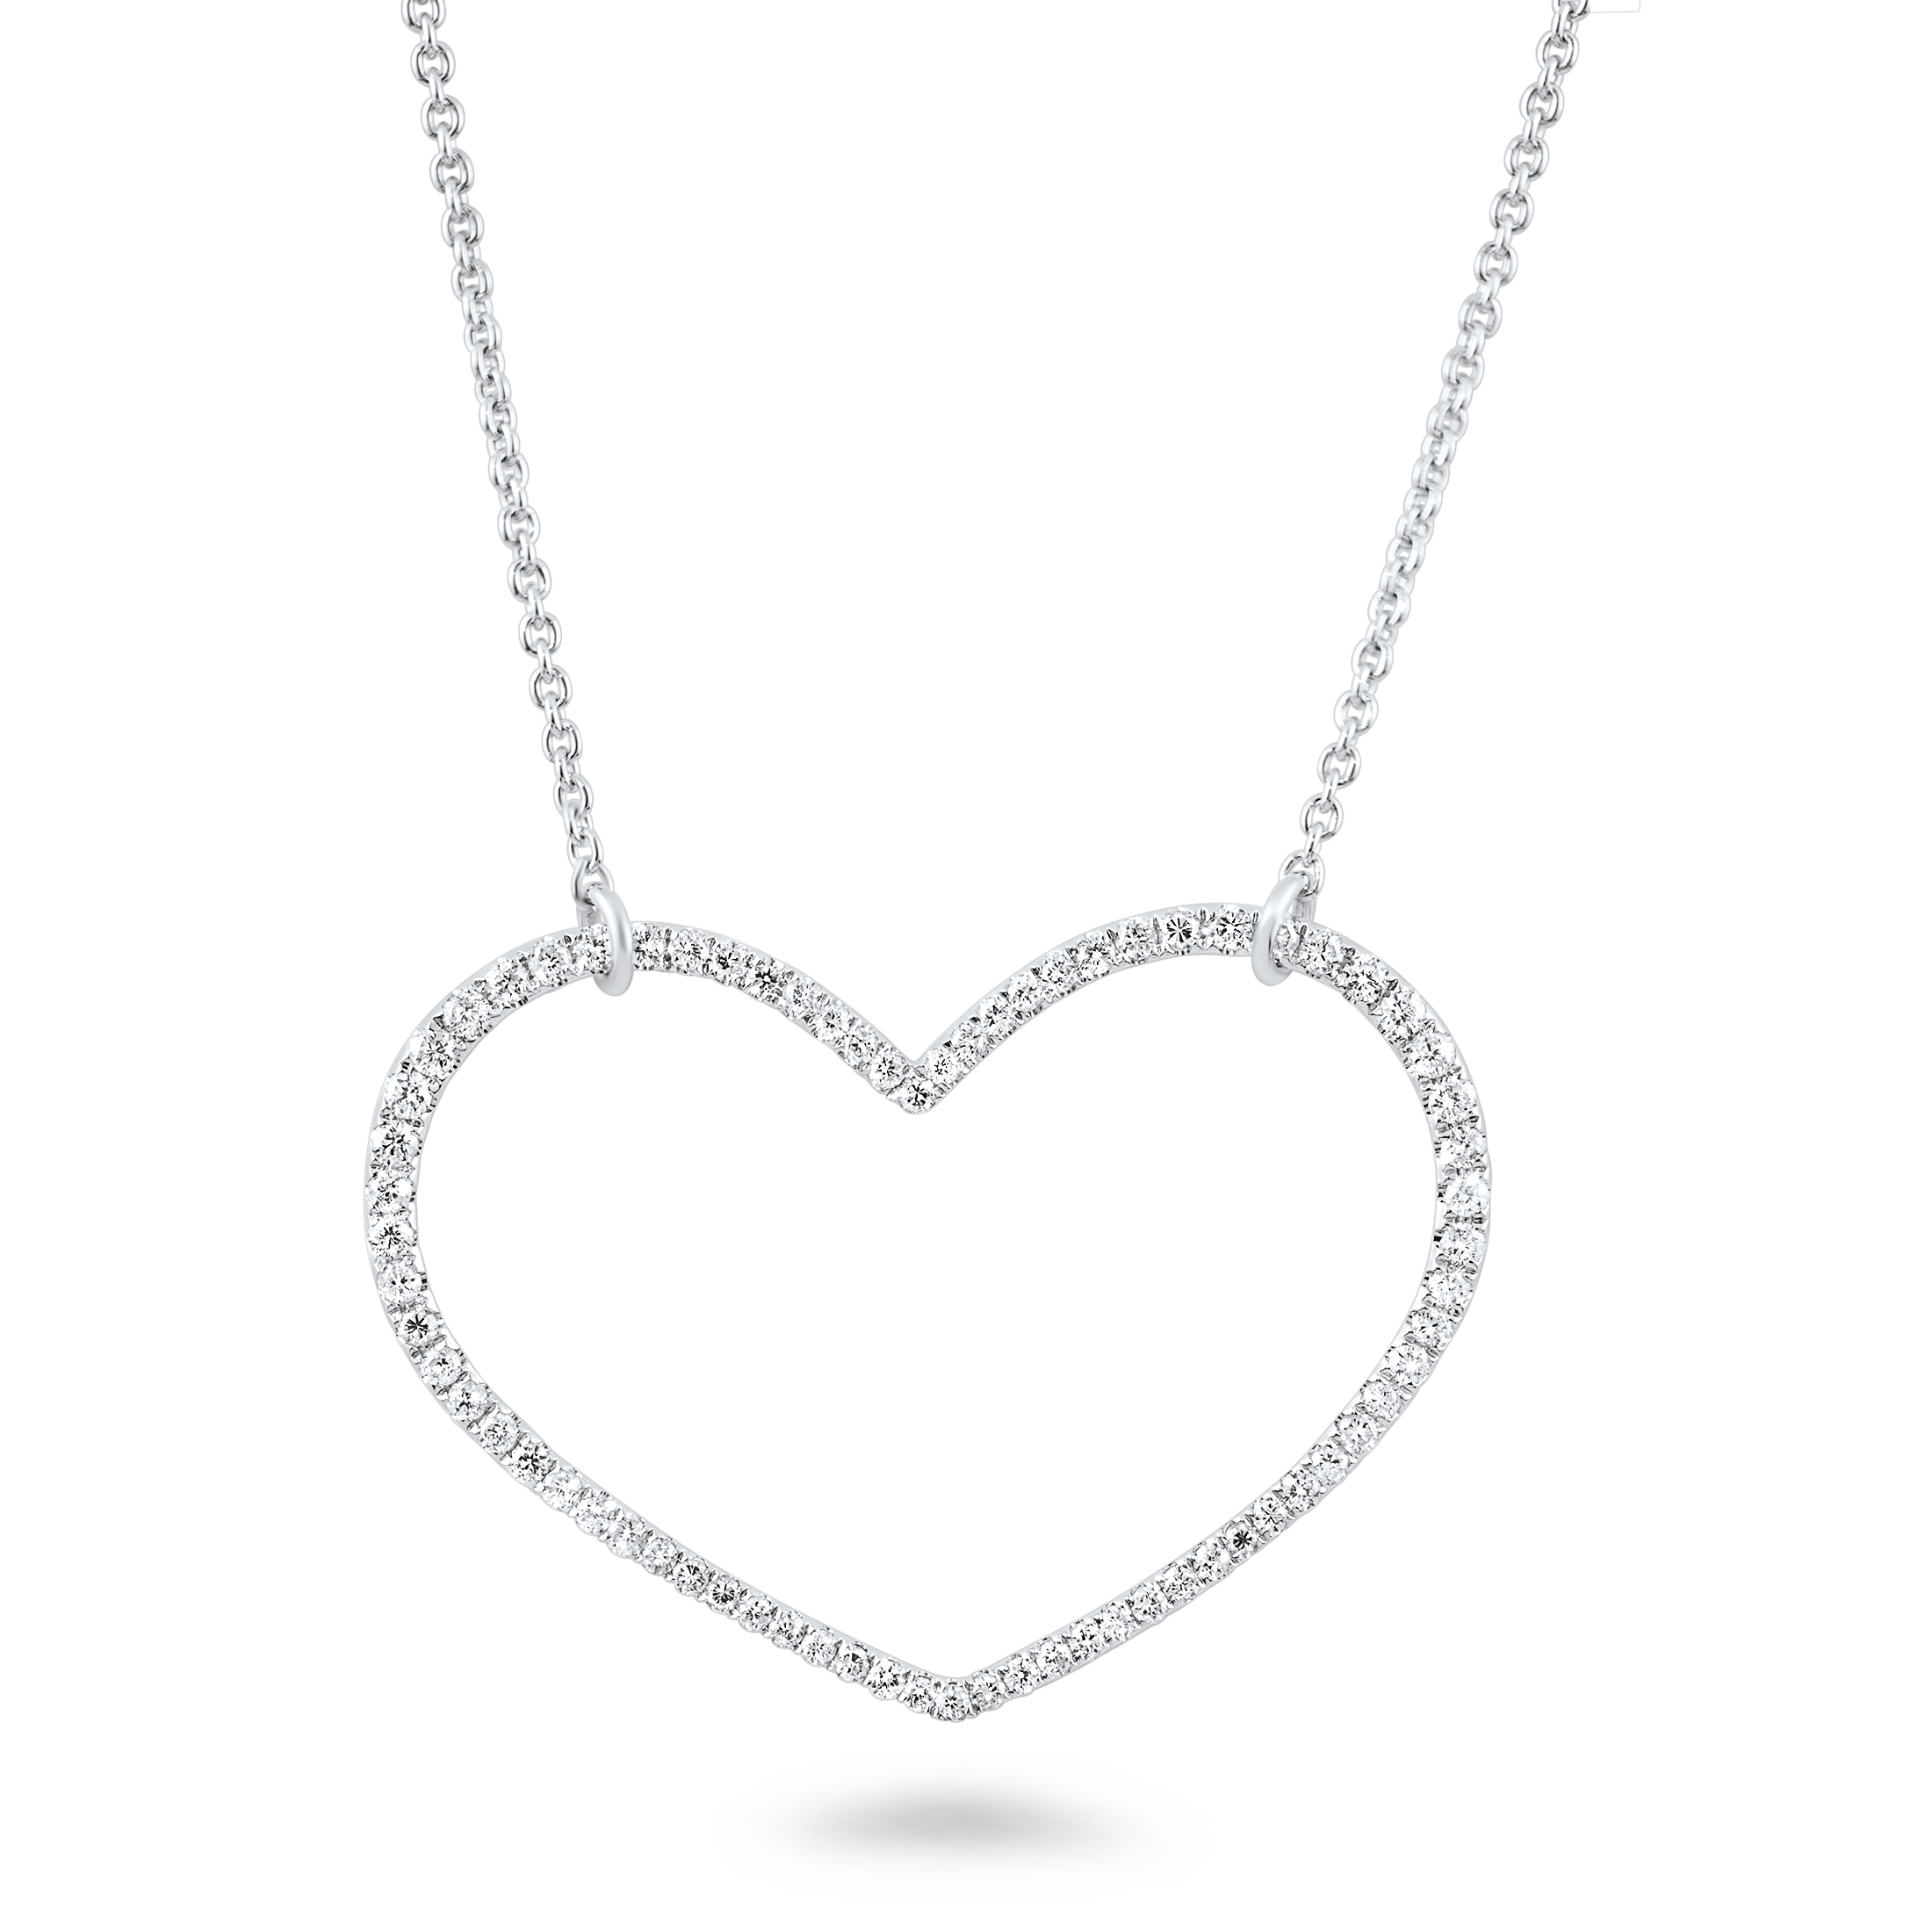 Necklace heart necklace